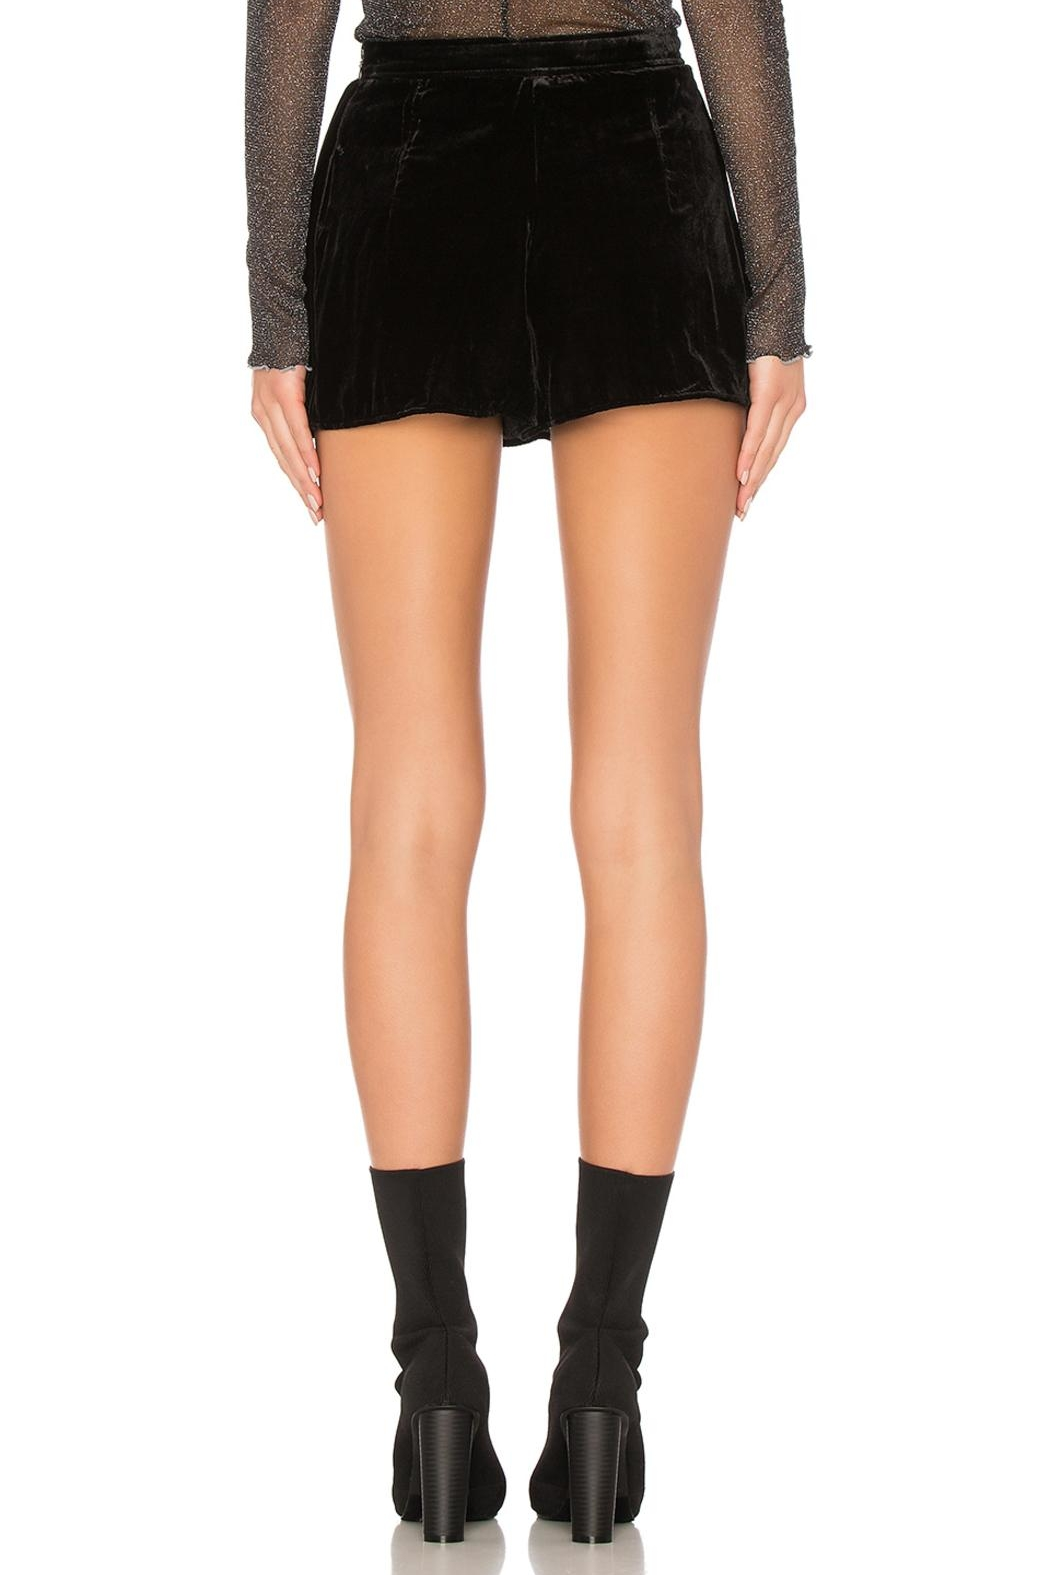 Free People Skort - Side Cropped Image